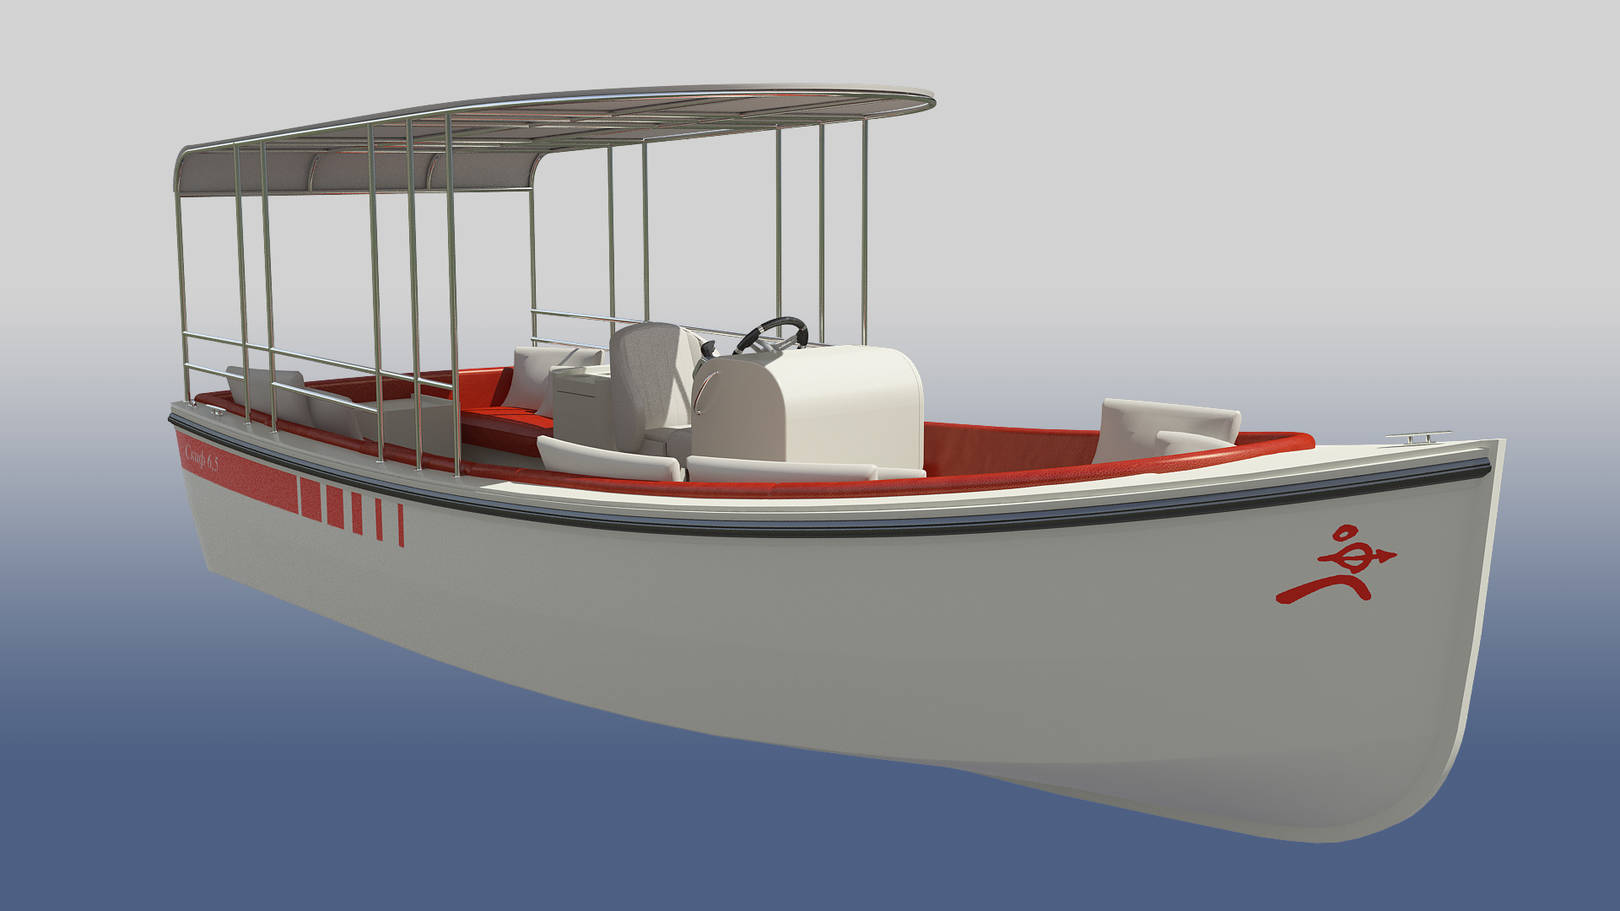 Pleasure boat design